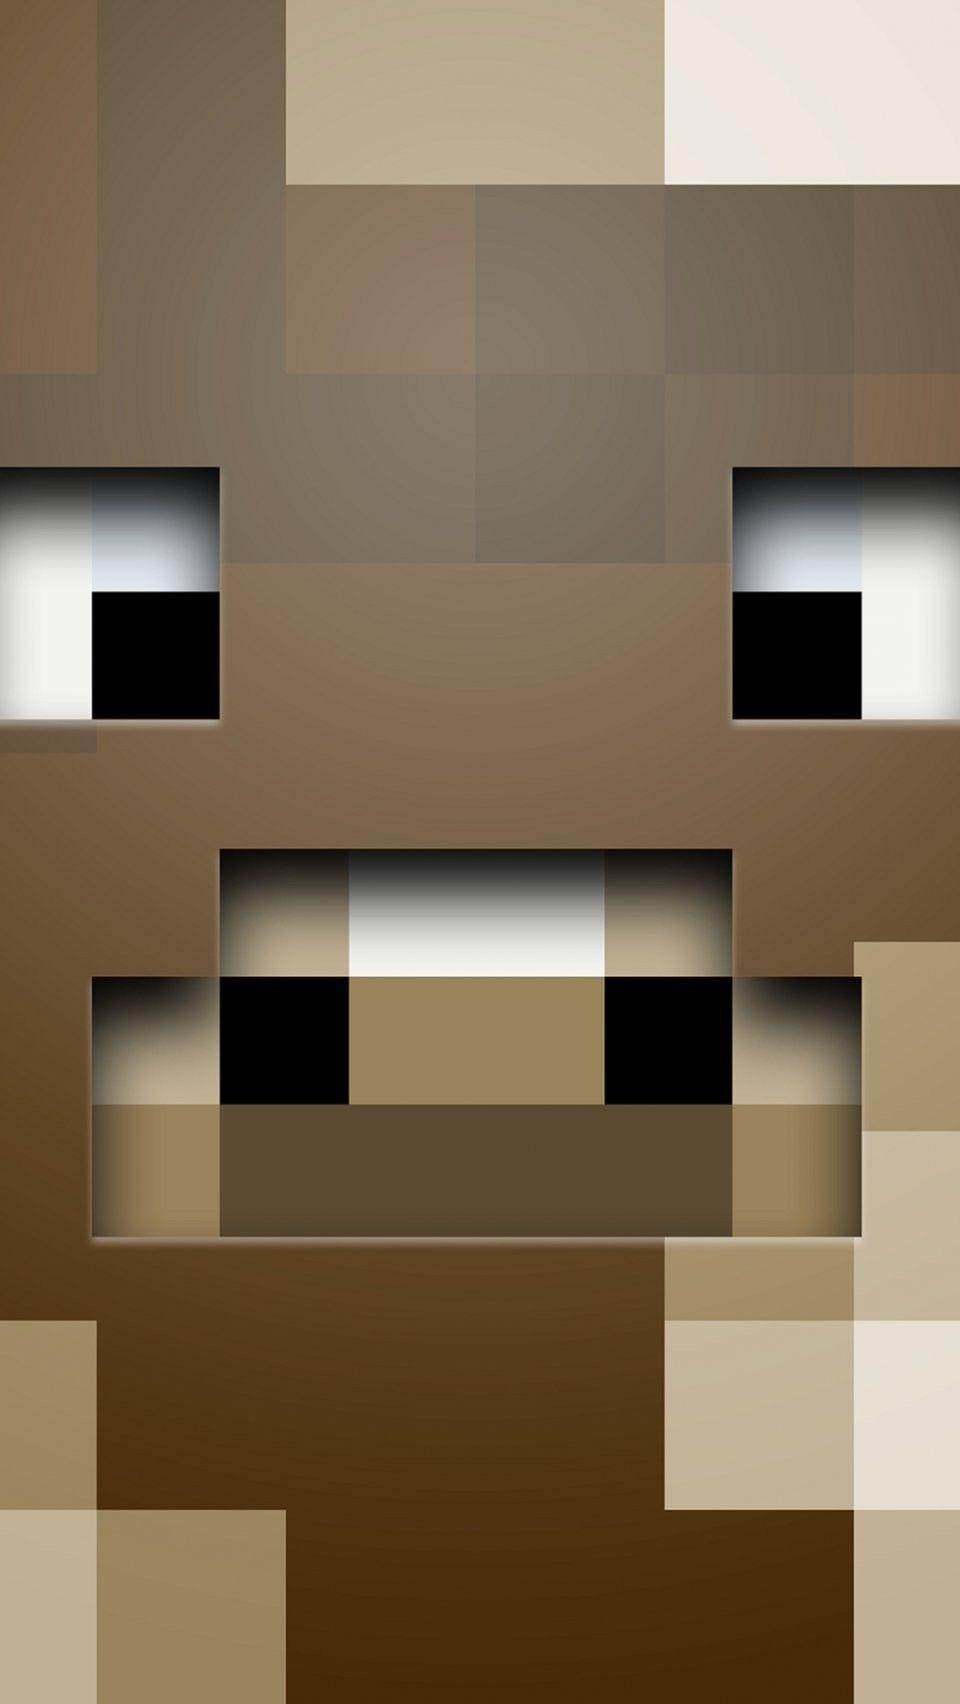 minecraft iphone 6 wallpapers Items